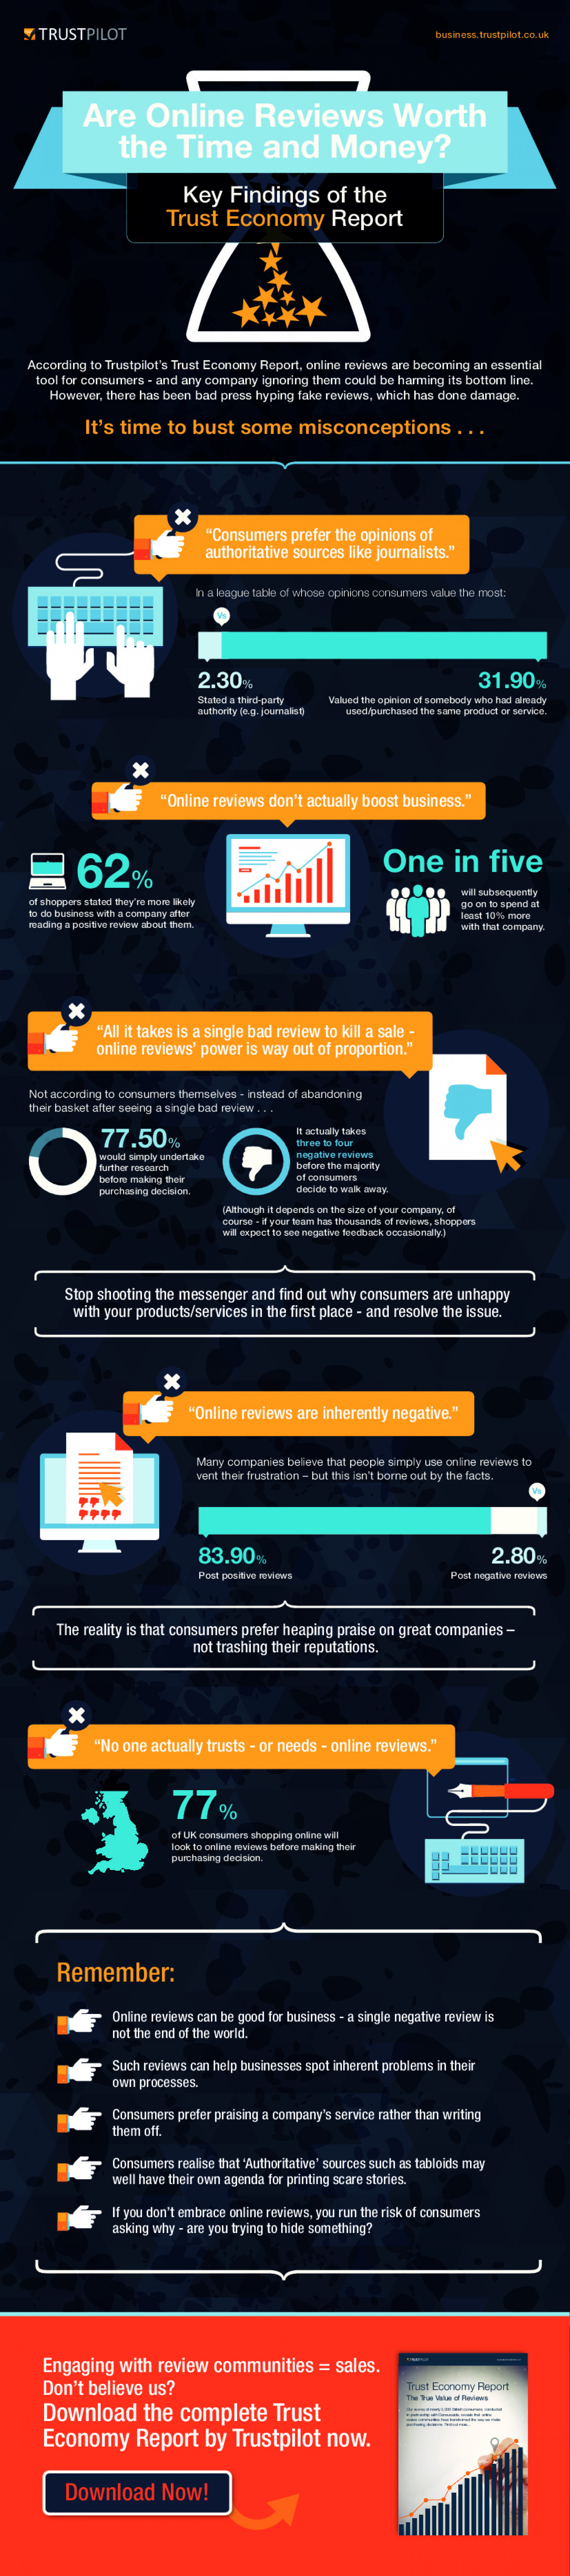 Are Online Reviews Worth the Time and Money?  Infographic